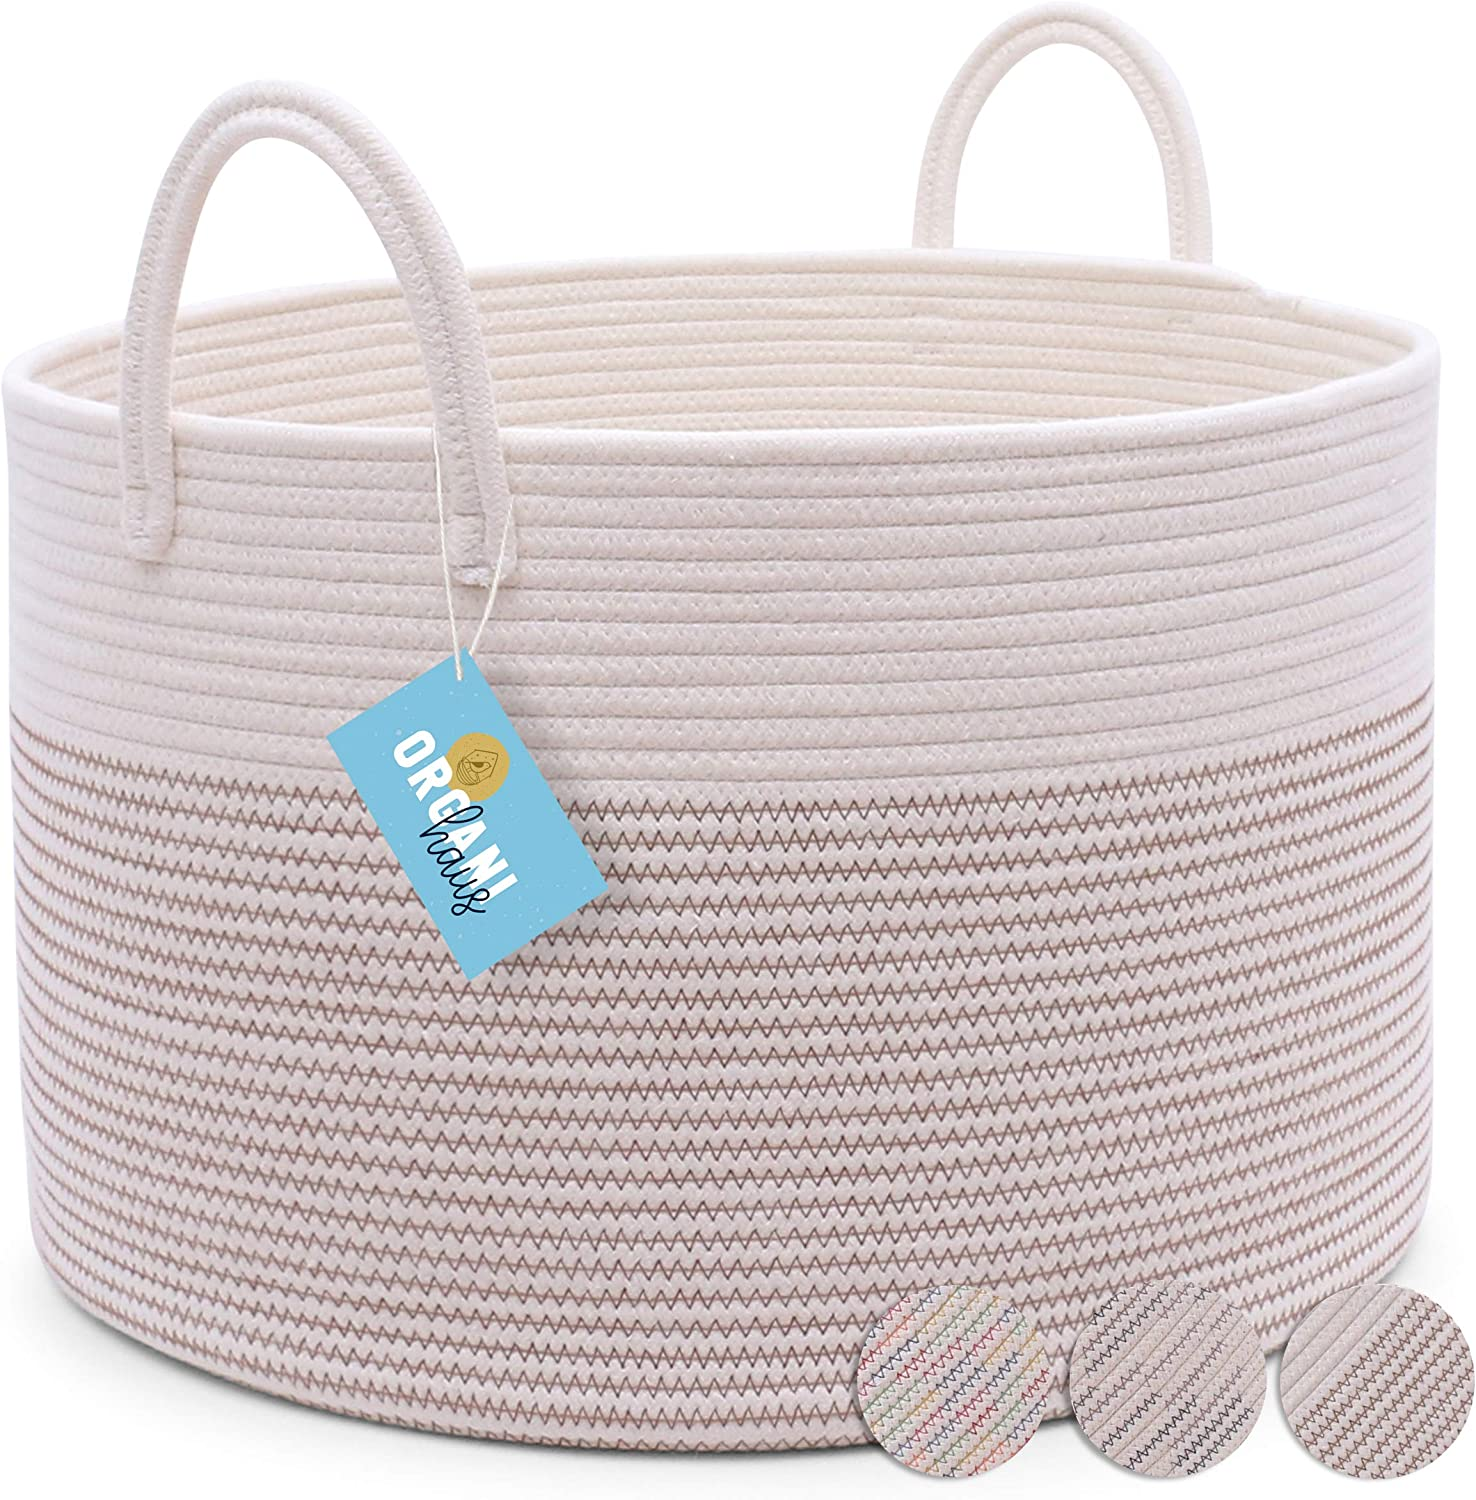 """OrganiHaus Cotton Rope Basket in Brown and Off-White 